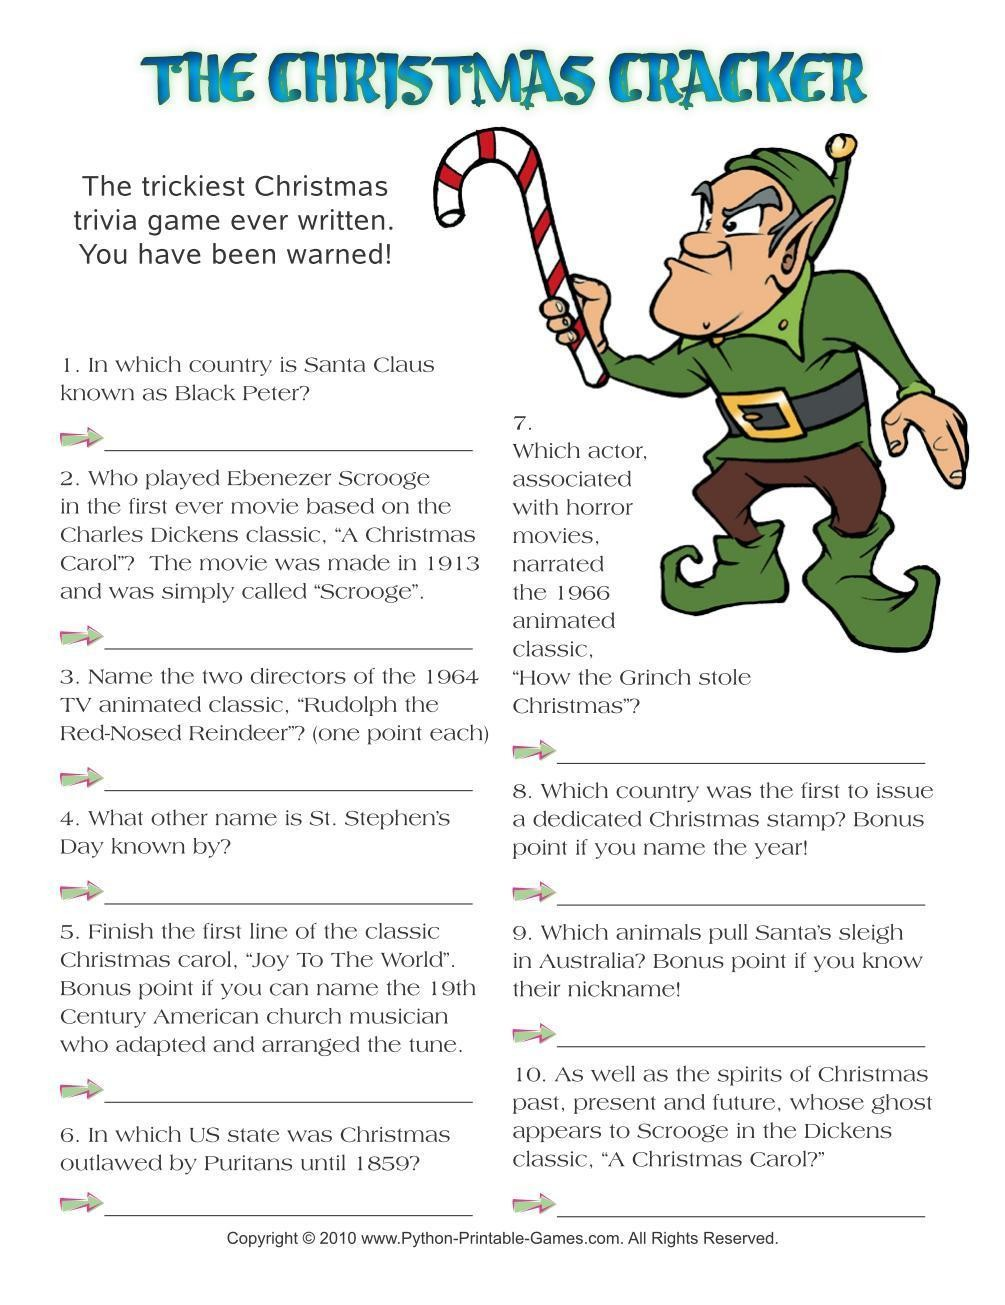 Christmas: Cracker Hard Trivia